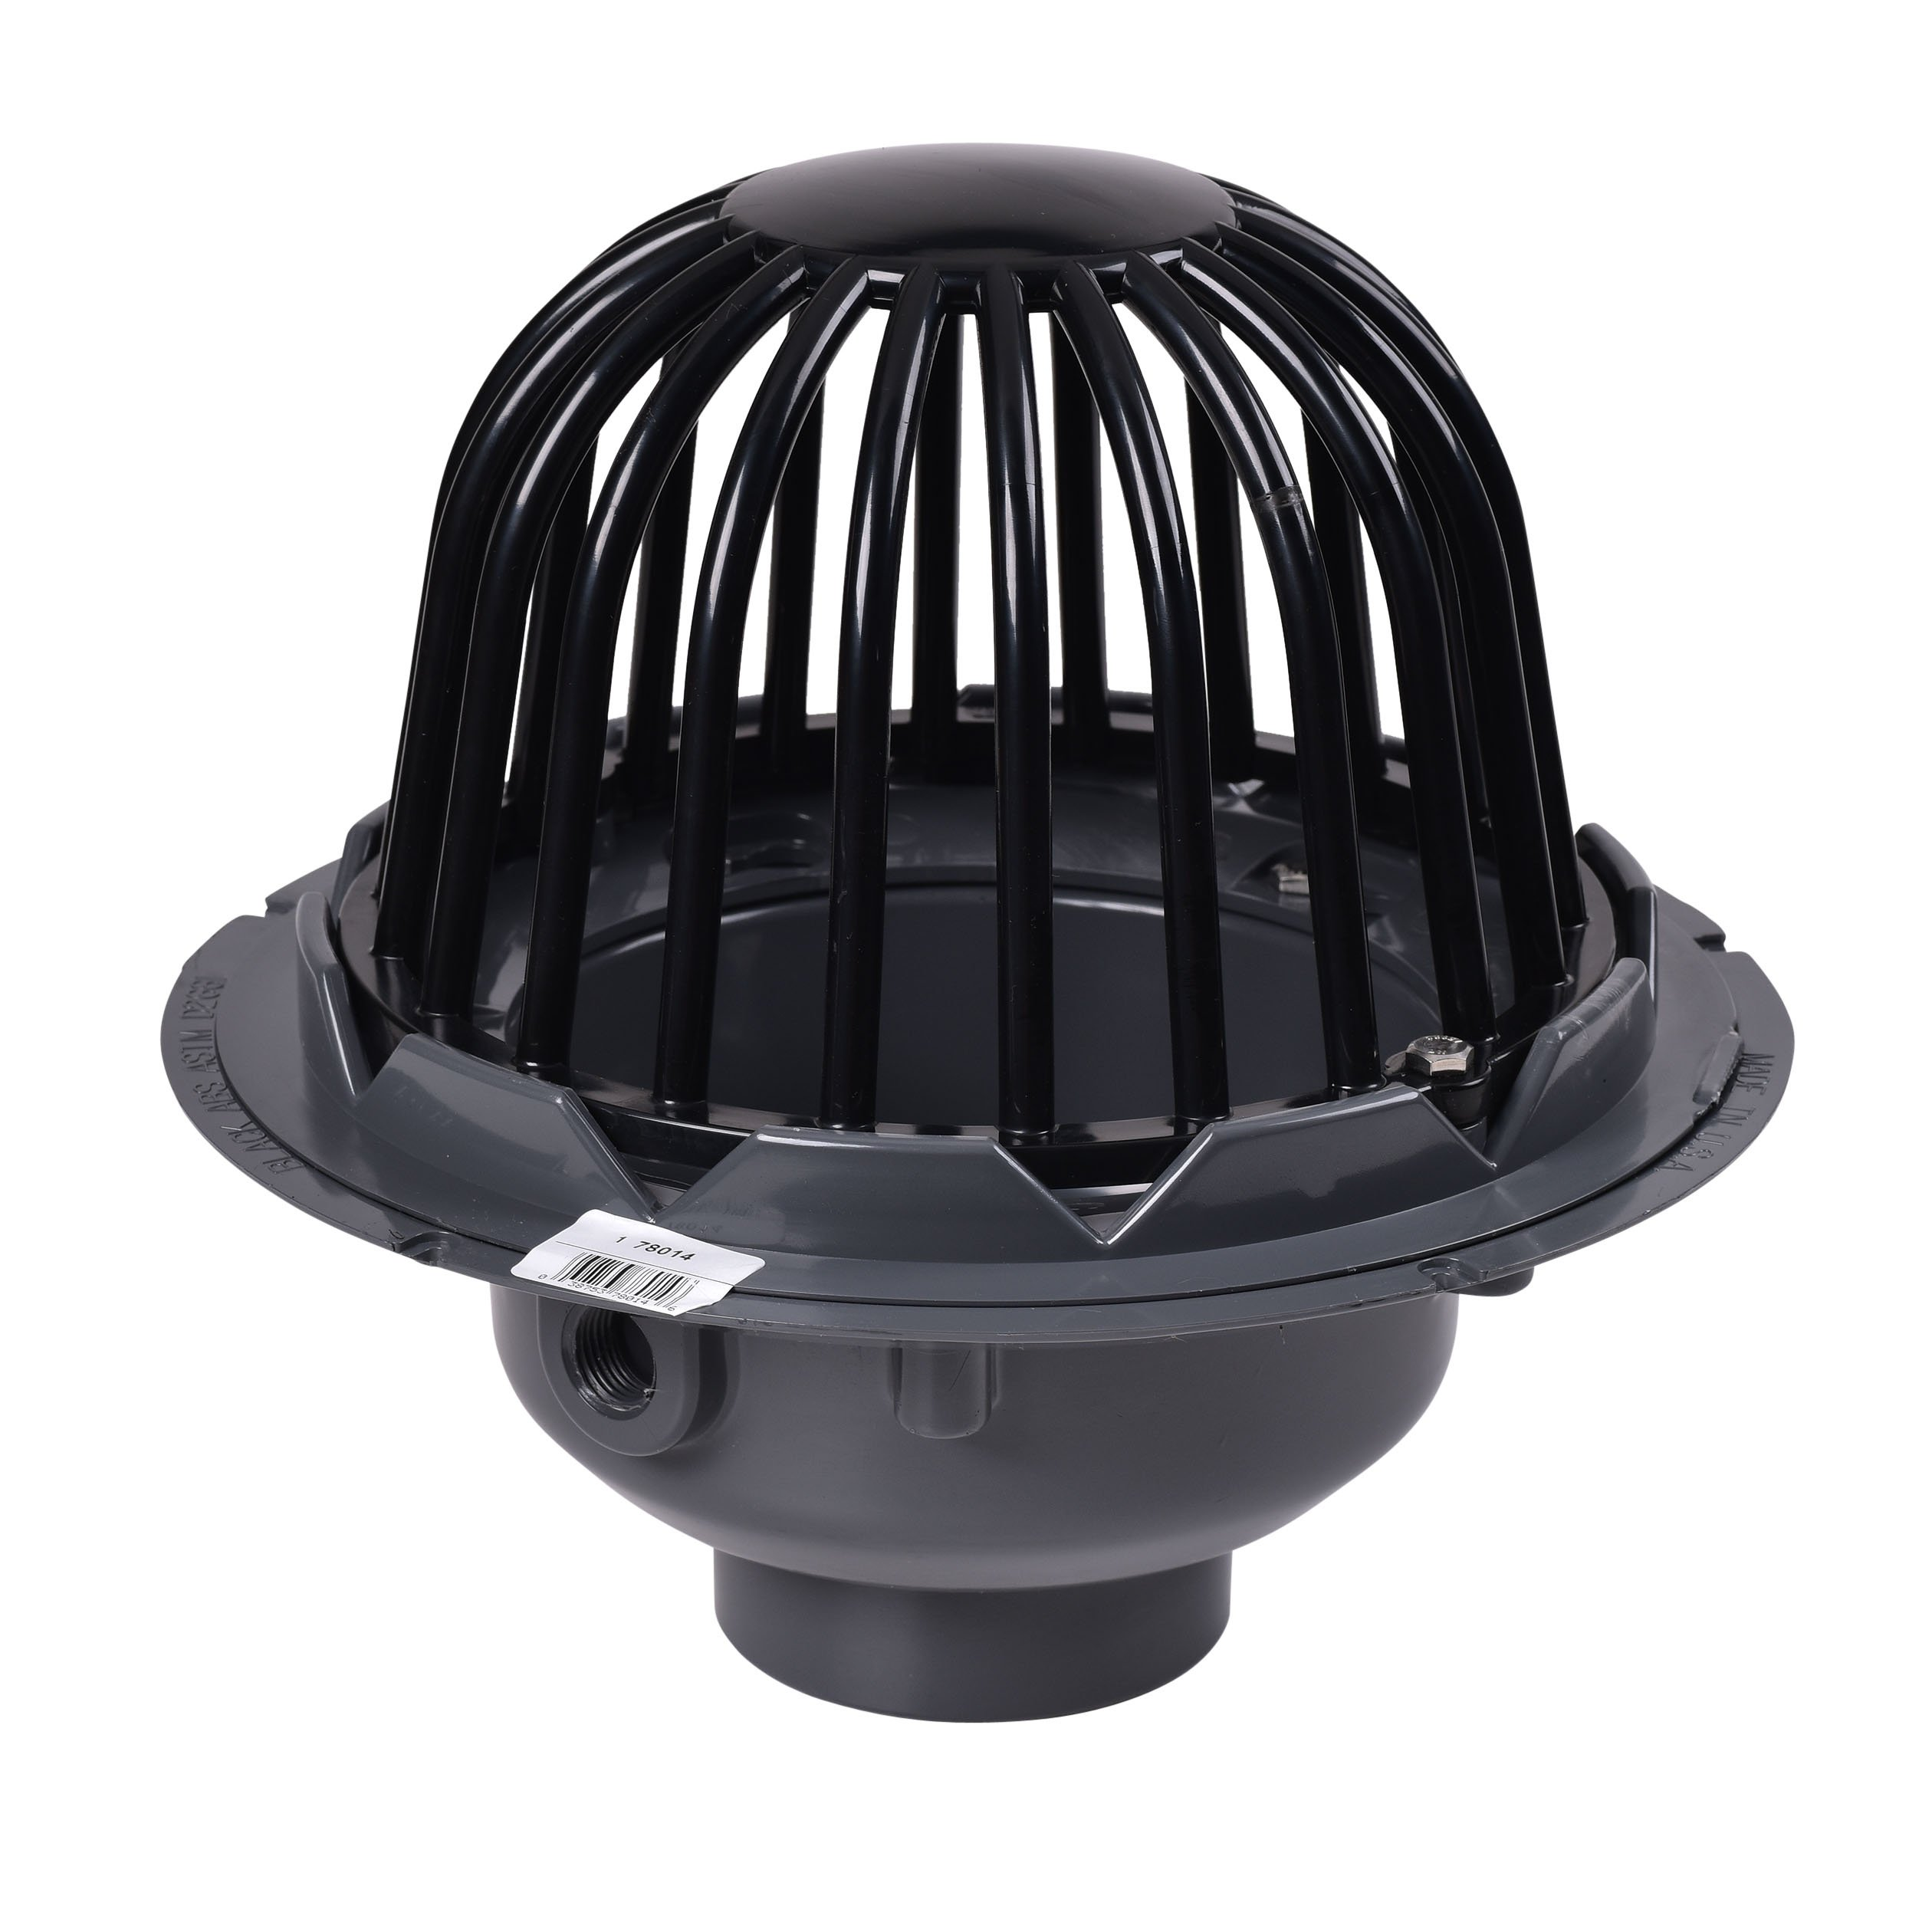 oatey 78014 pvc roof drain with plastic dome 4 inch - Roof Drains